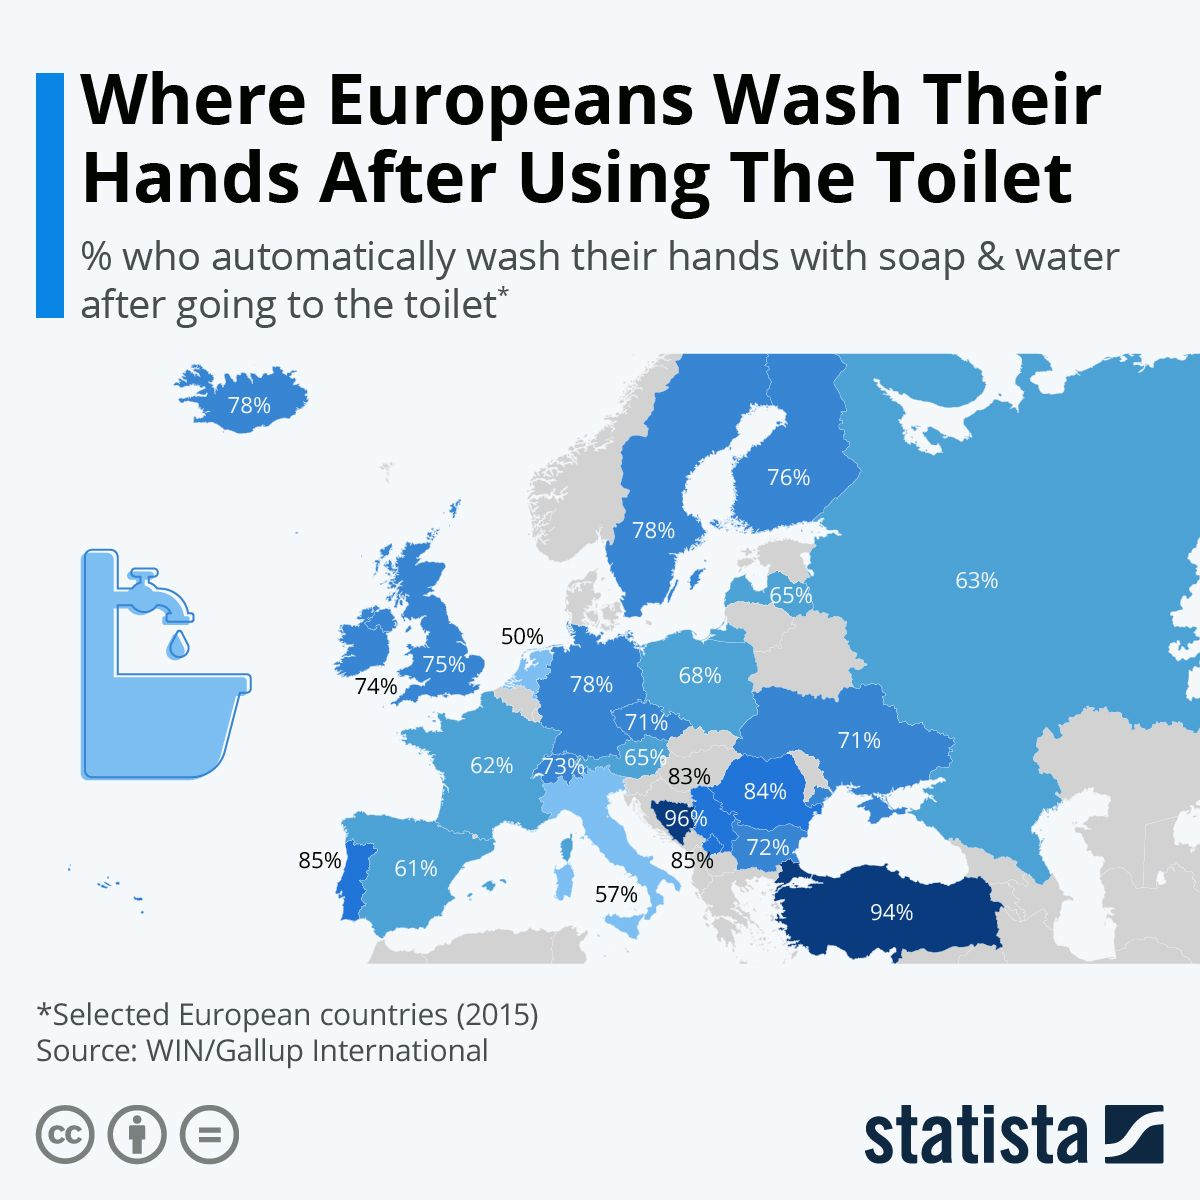 Where Europeans Wash Their Hands After Using The Toilet in